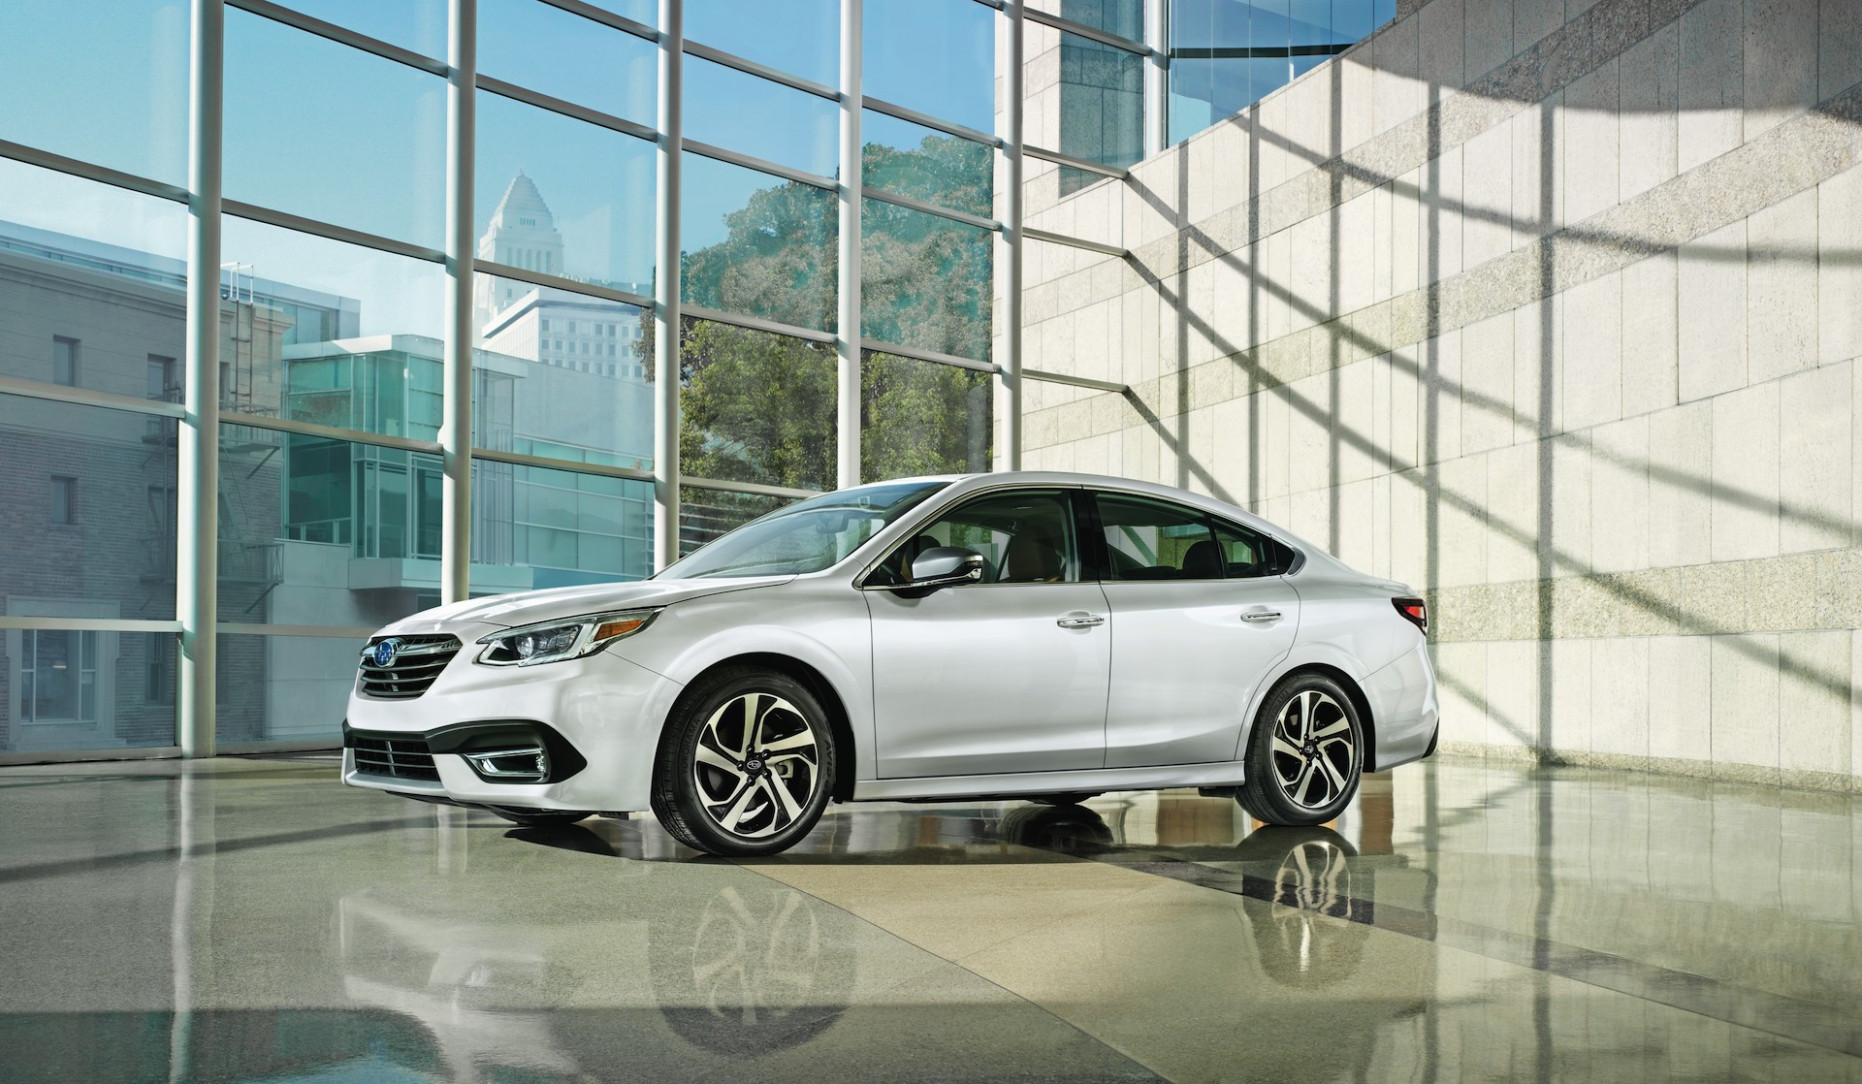 8 Subaru Legacy Review, Ratings, Specs, Prices, and Photos ...